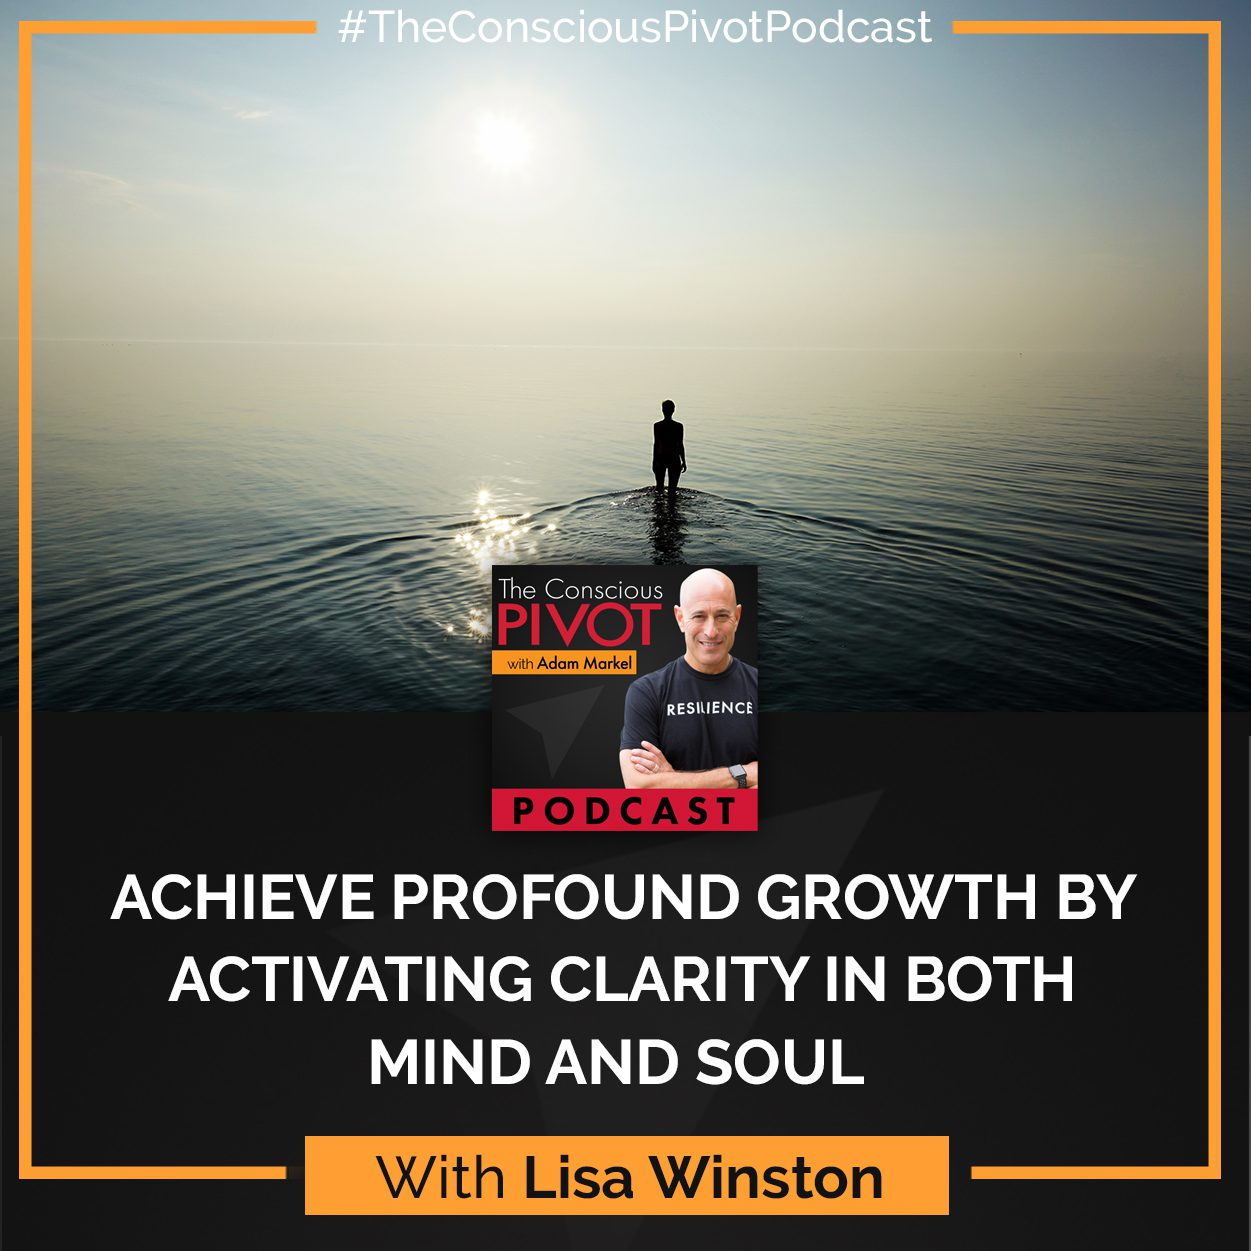 Achieve Profound Growth By Activating Clarity In Both Mind And Soul With Lisa Winston